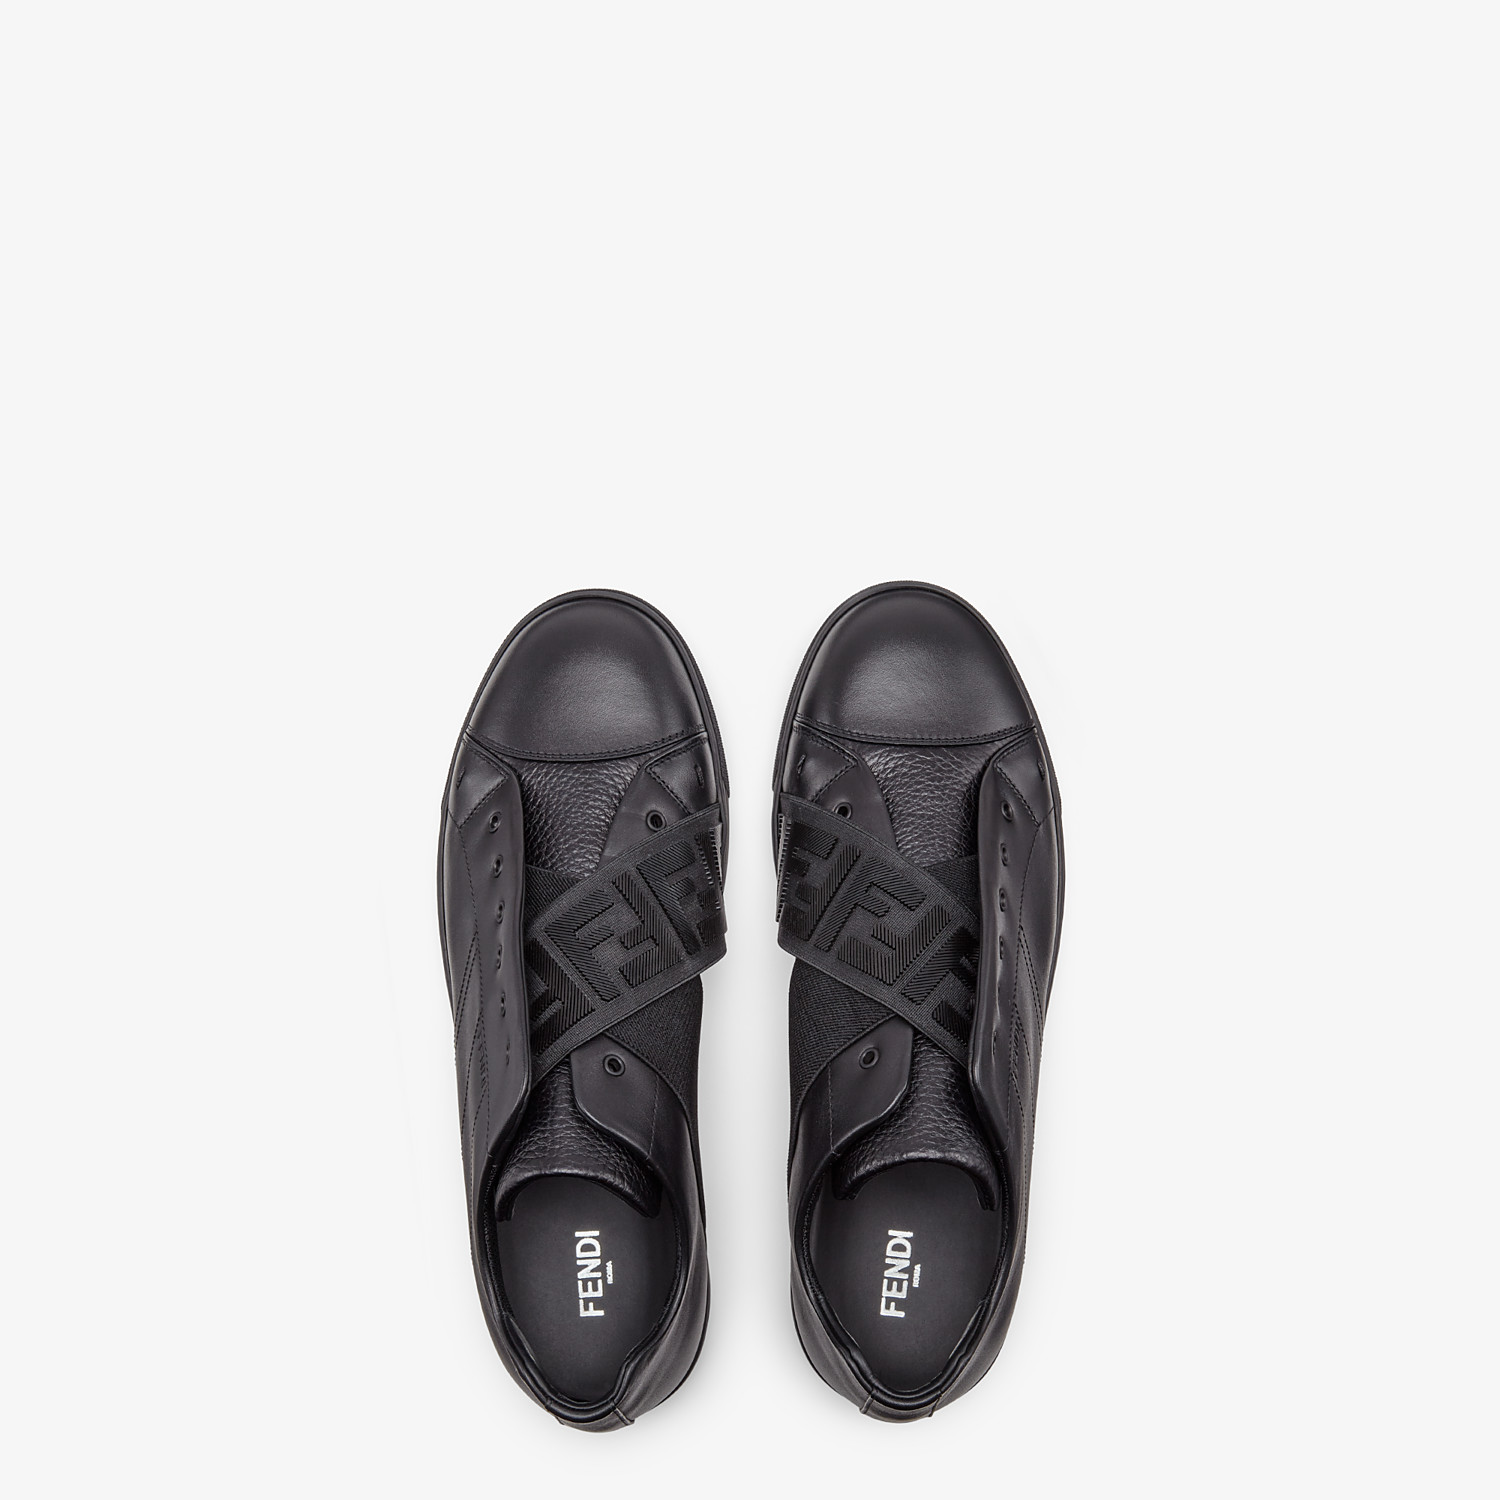 FENDI SNEAKERS - Black leather slip-ons - view 4 detail